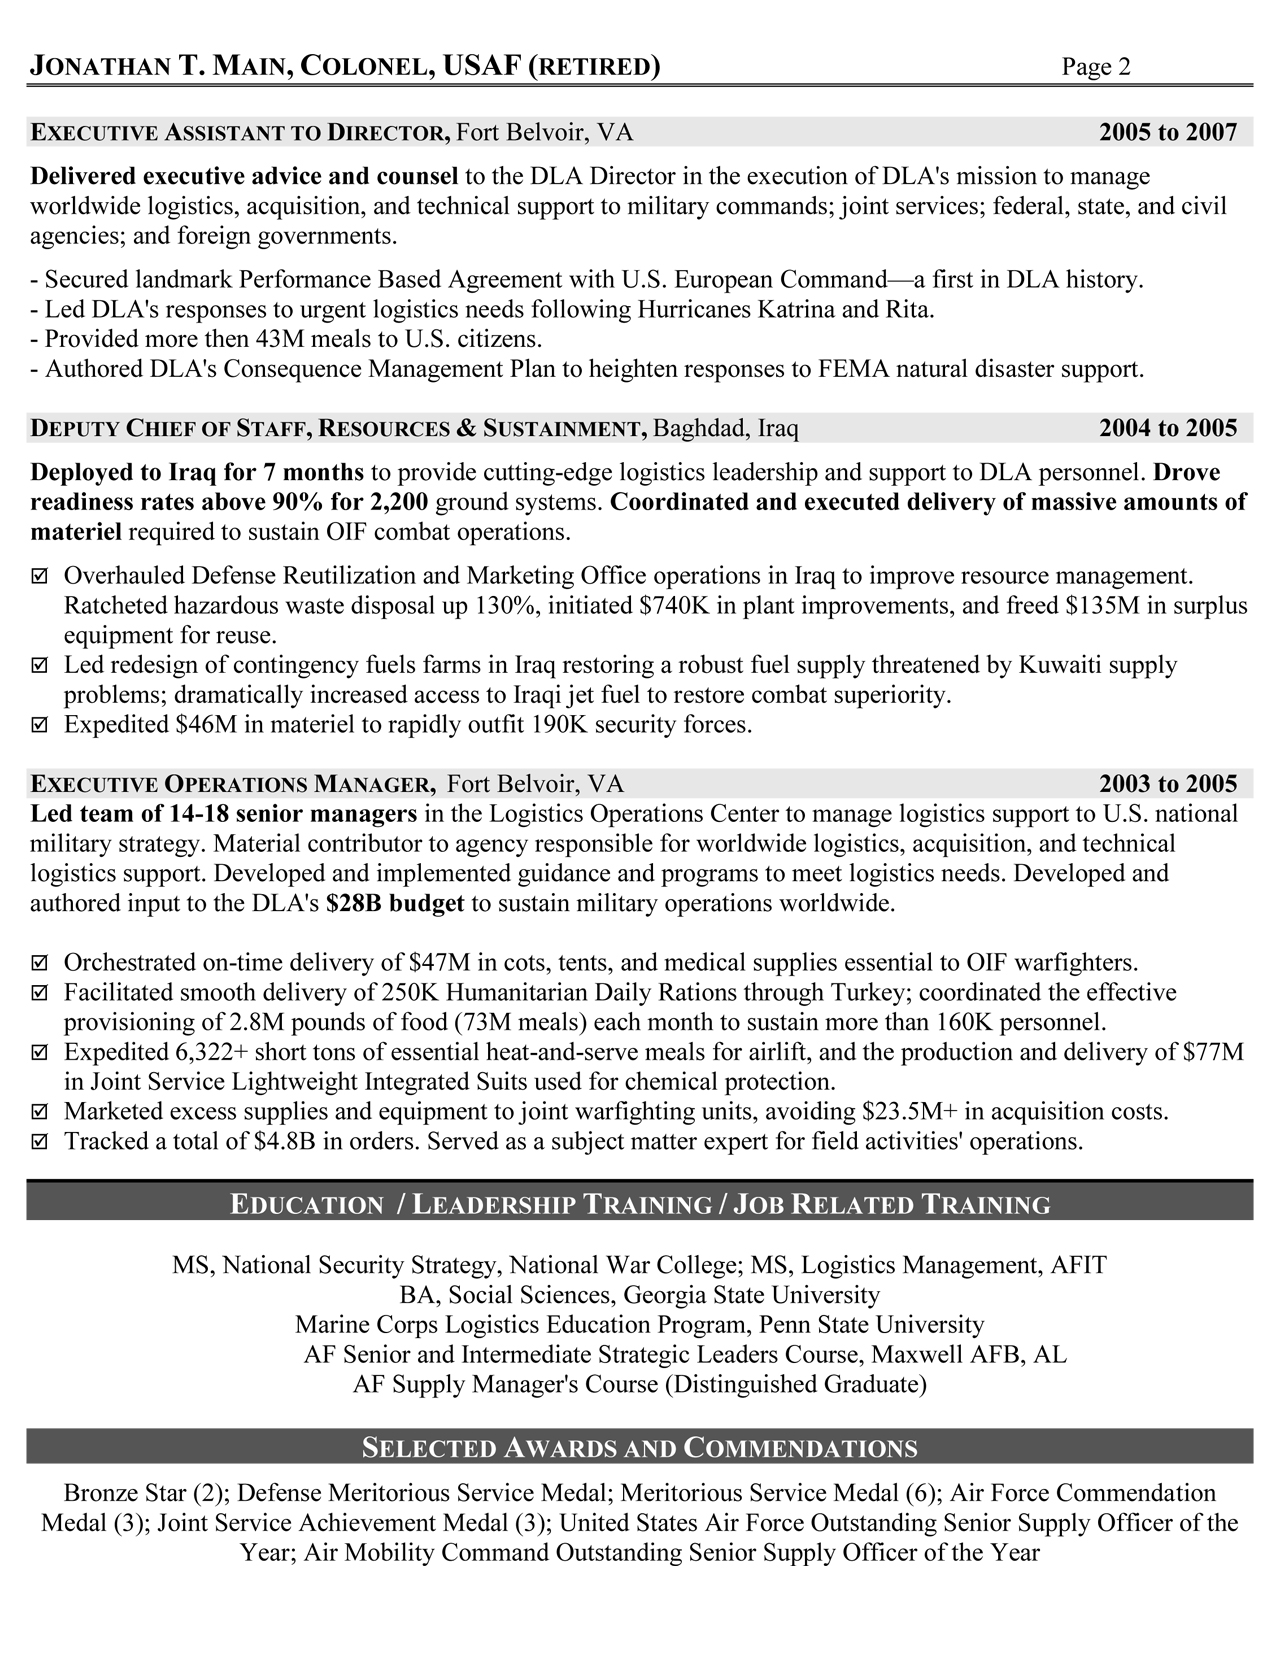 resume writing services for retired military to civilian resumes logistician executive Resume Military To Civilian Resume Writing Services